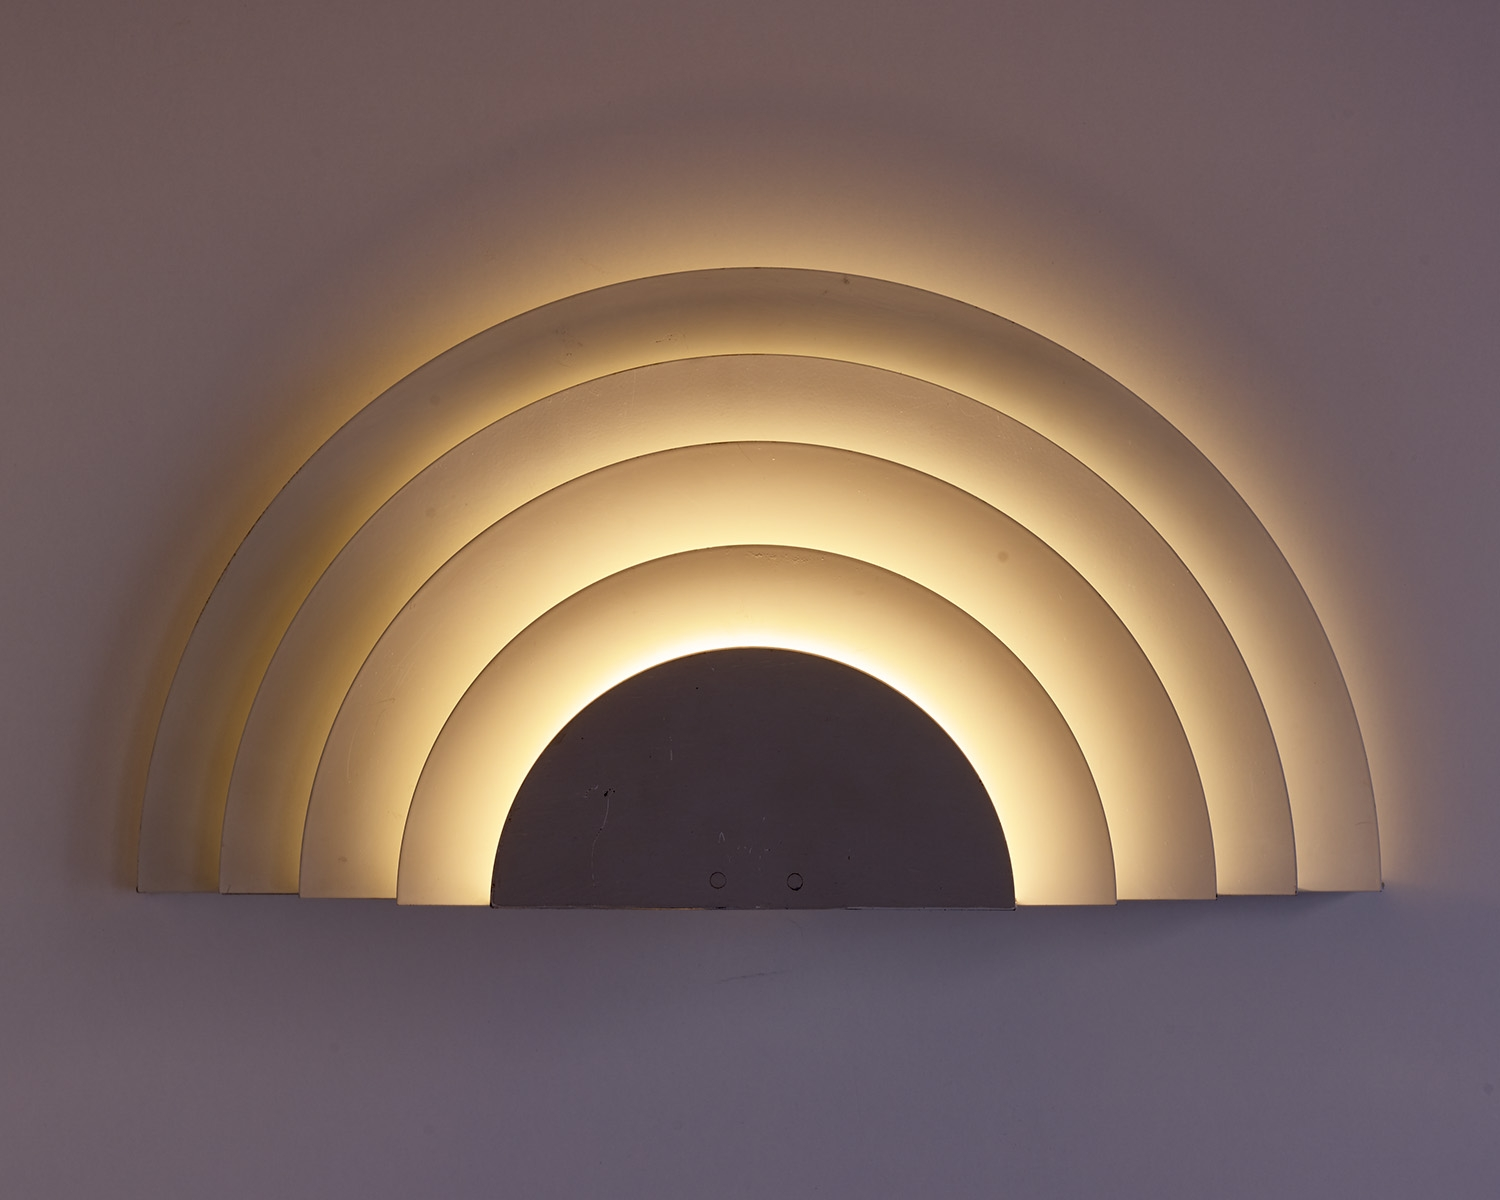 wall-lights-meander-by-cesare-casati-and-emanuele-ponzio-image-03